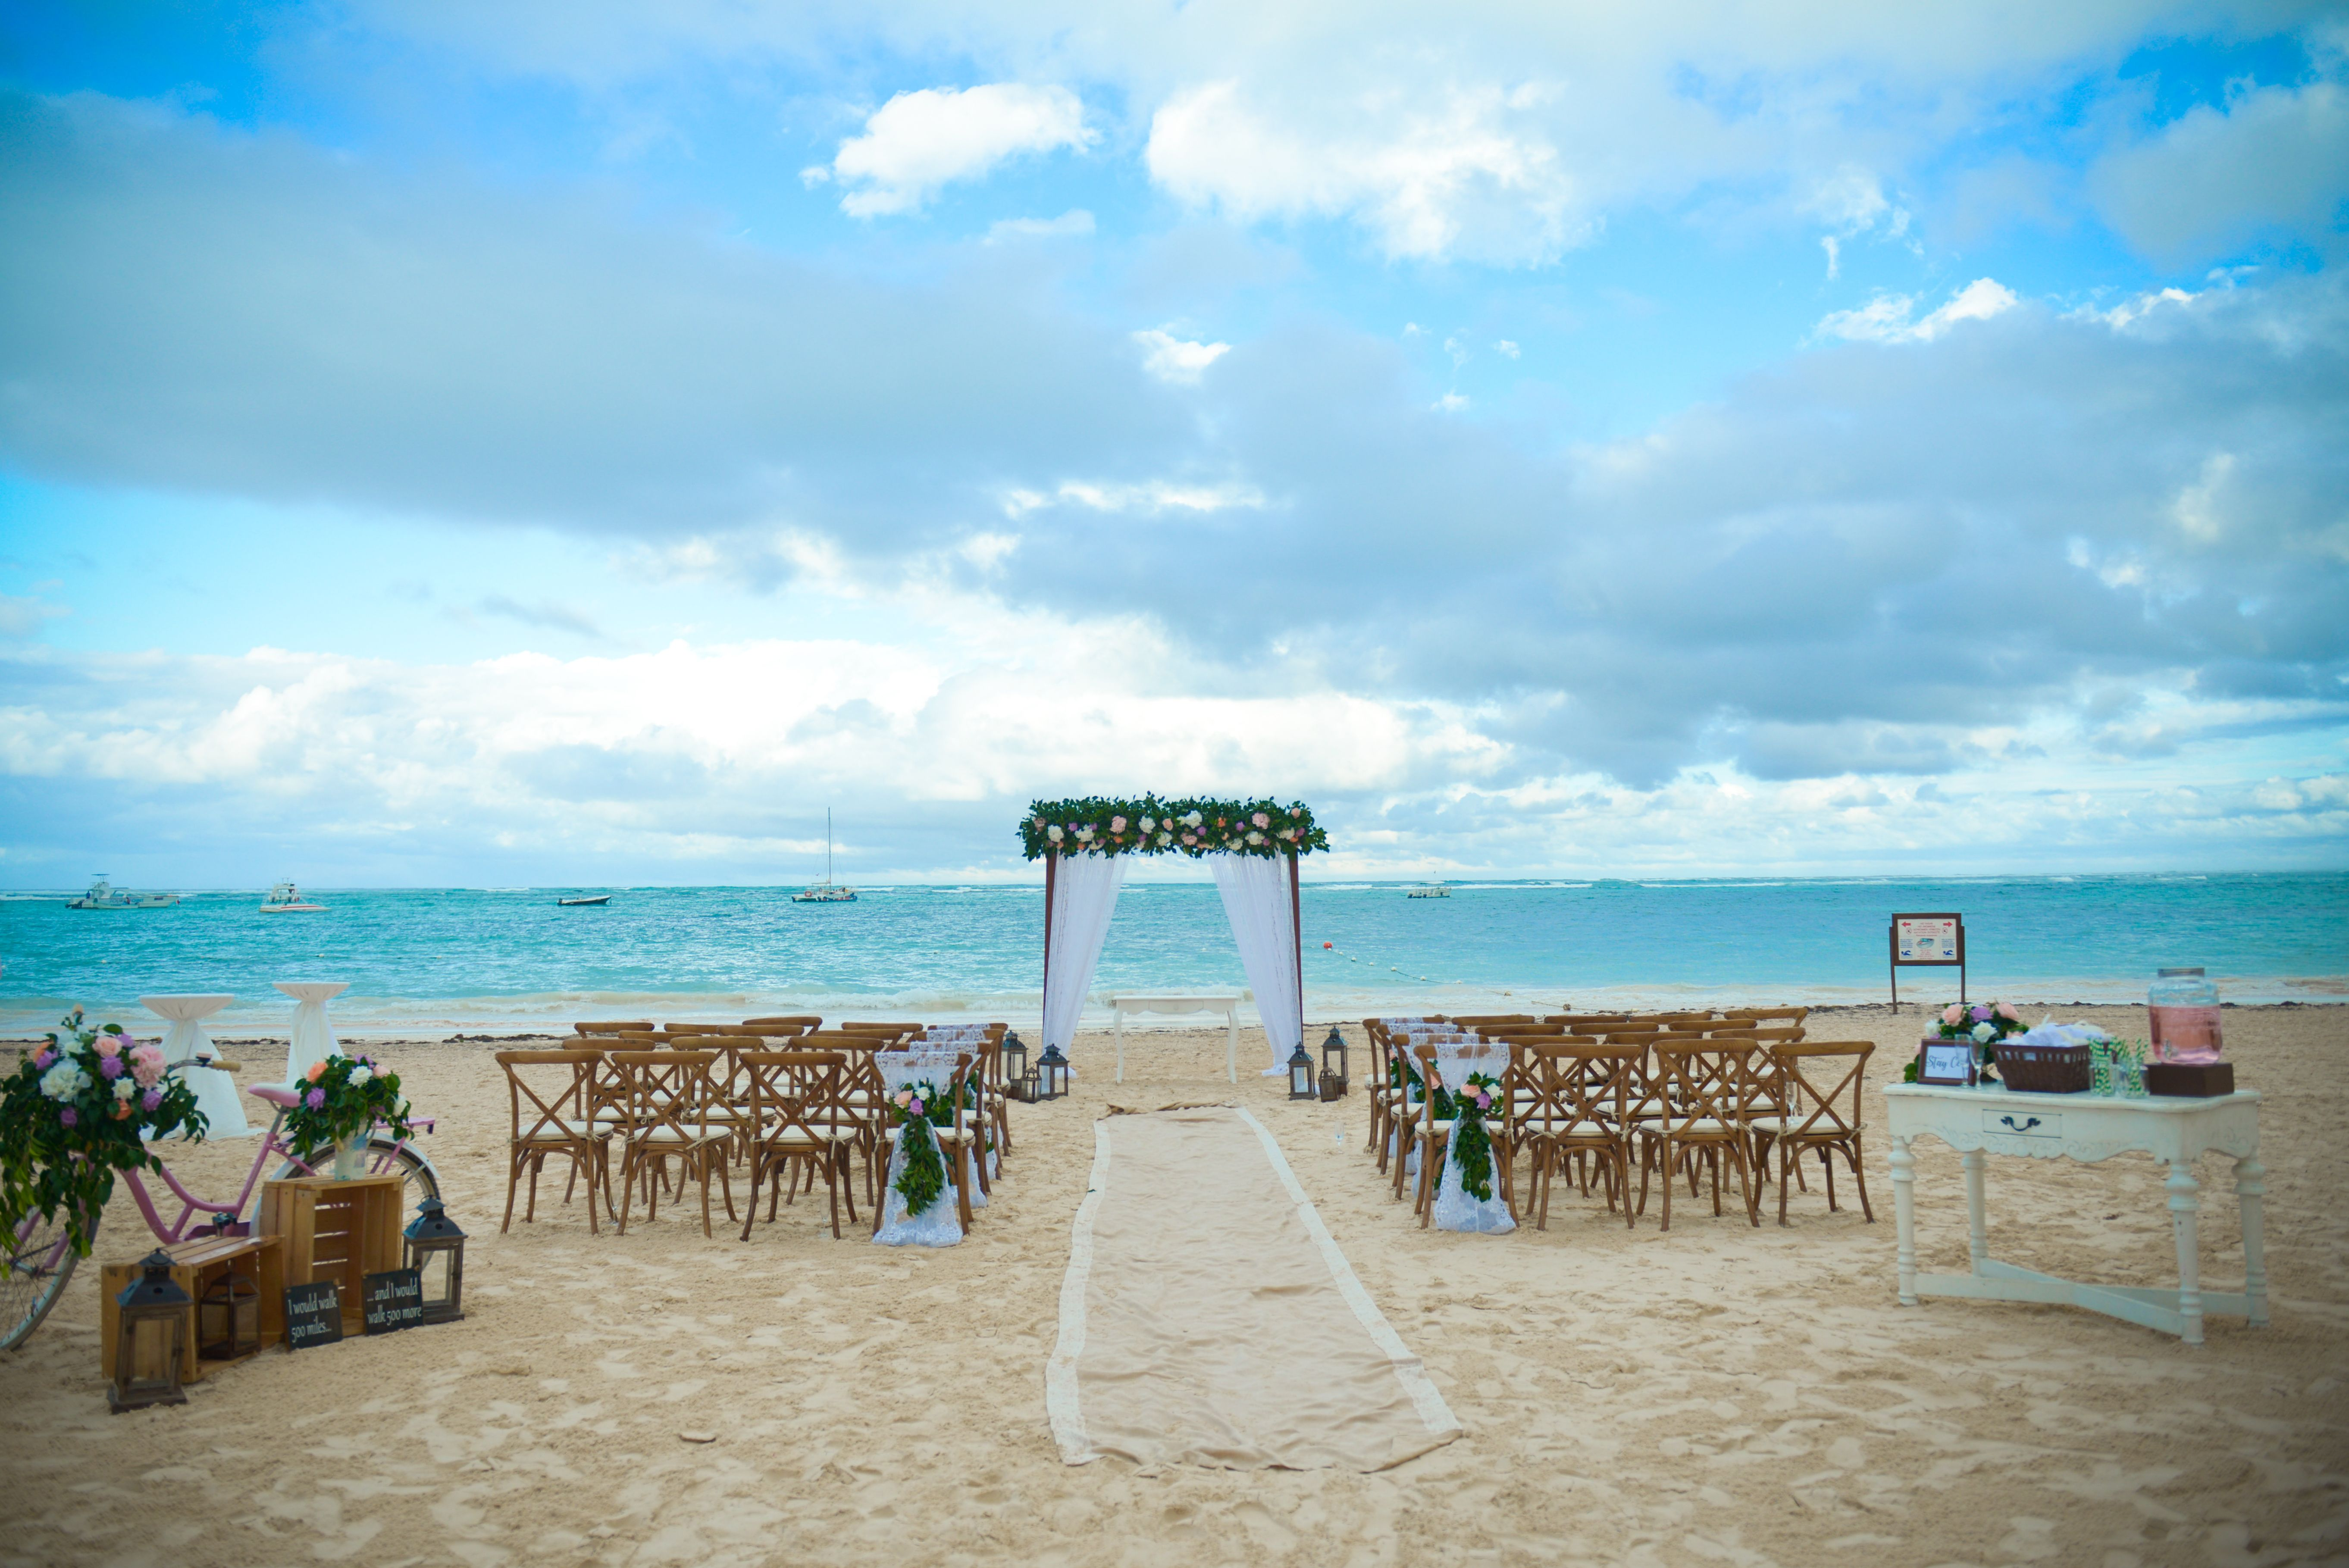 Let The Ocean Be A Guest On Your Wedding Day At Now Larimar Punta Cana We Want To Take Care Of All Of The D Now Larimar Punta Cana Now Larimar